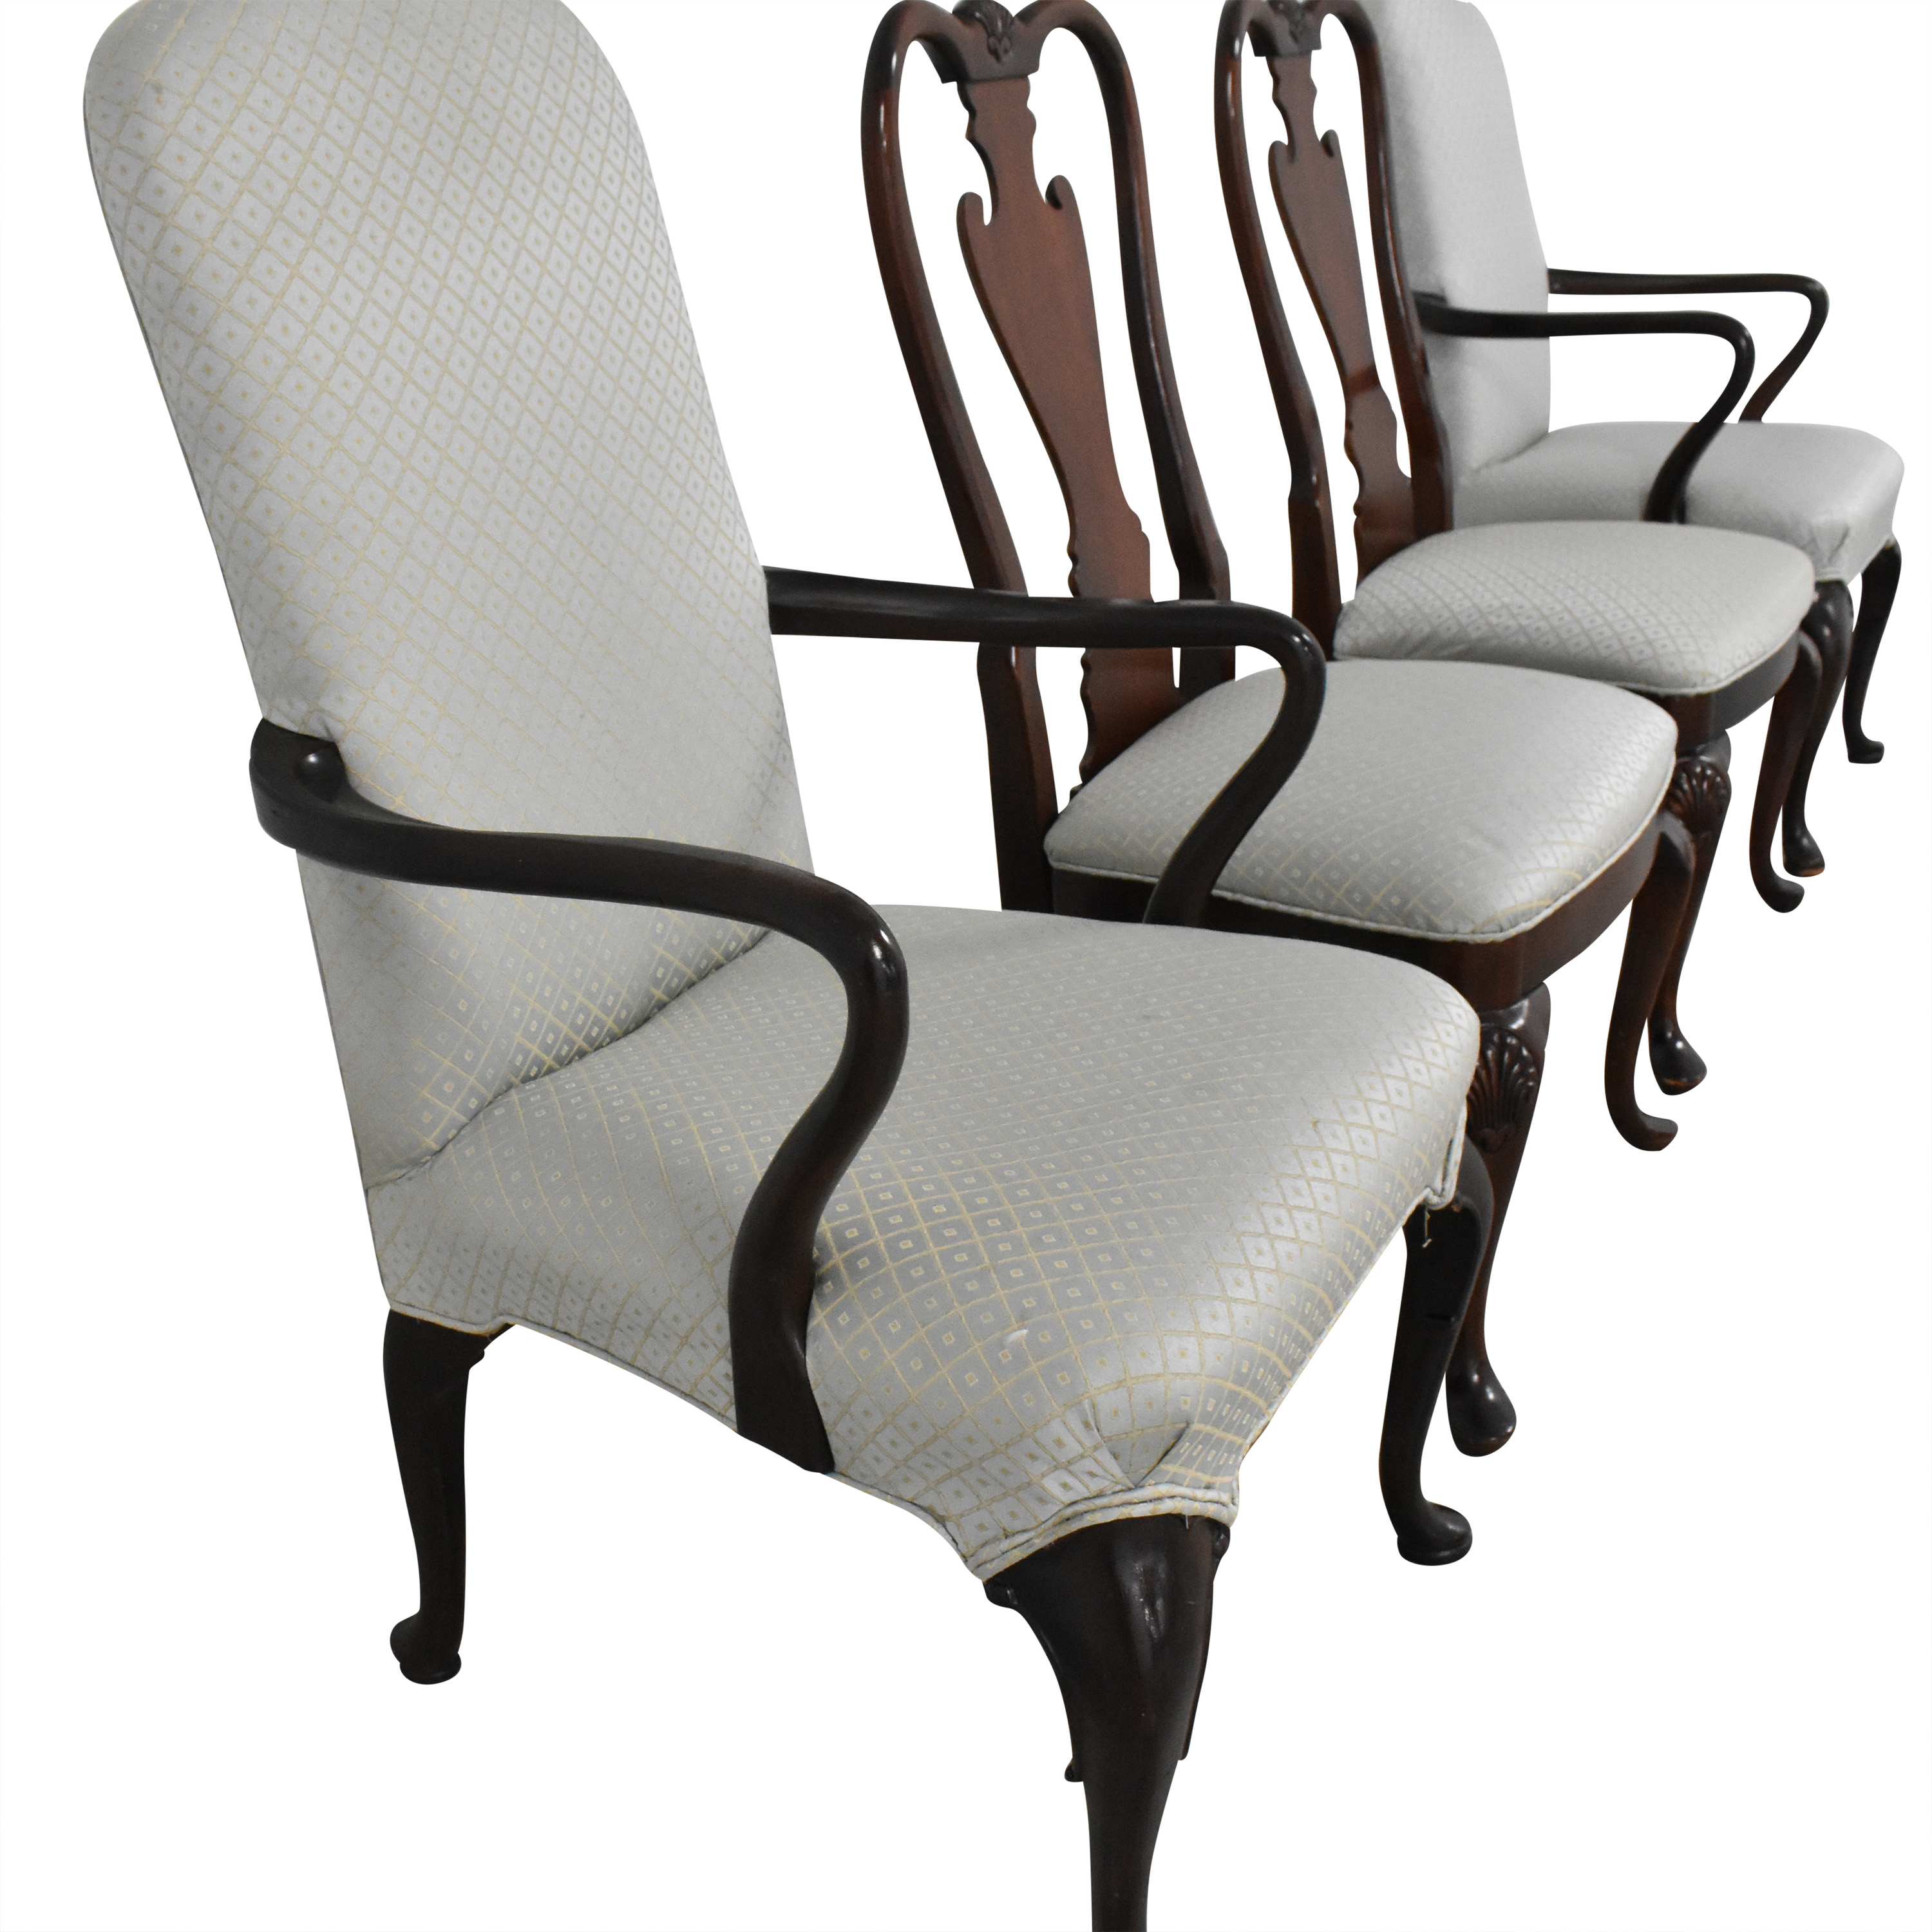 Stickley Furniture Stickley Furniture Queen Anne-Style Dining Chairs price